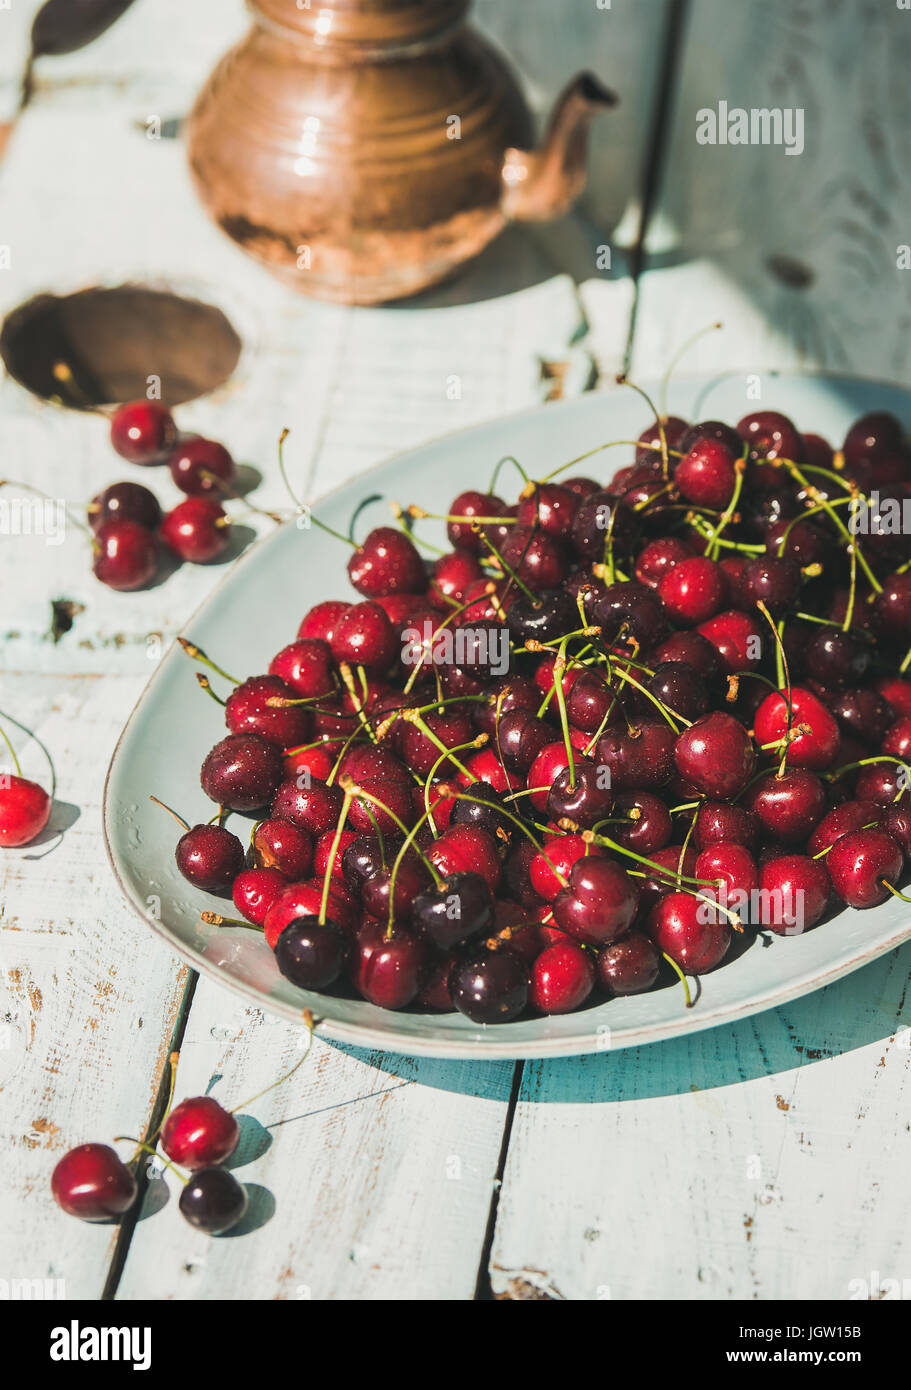 Plate of sweet cherries on light blue wooden table background - Stock Image